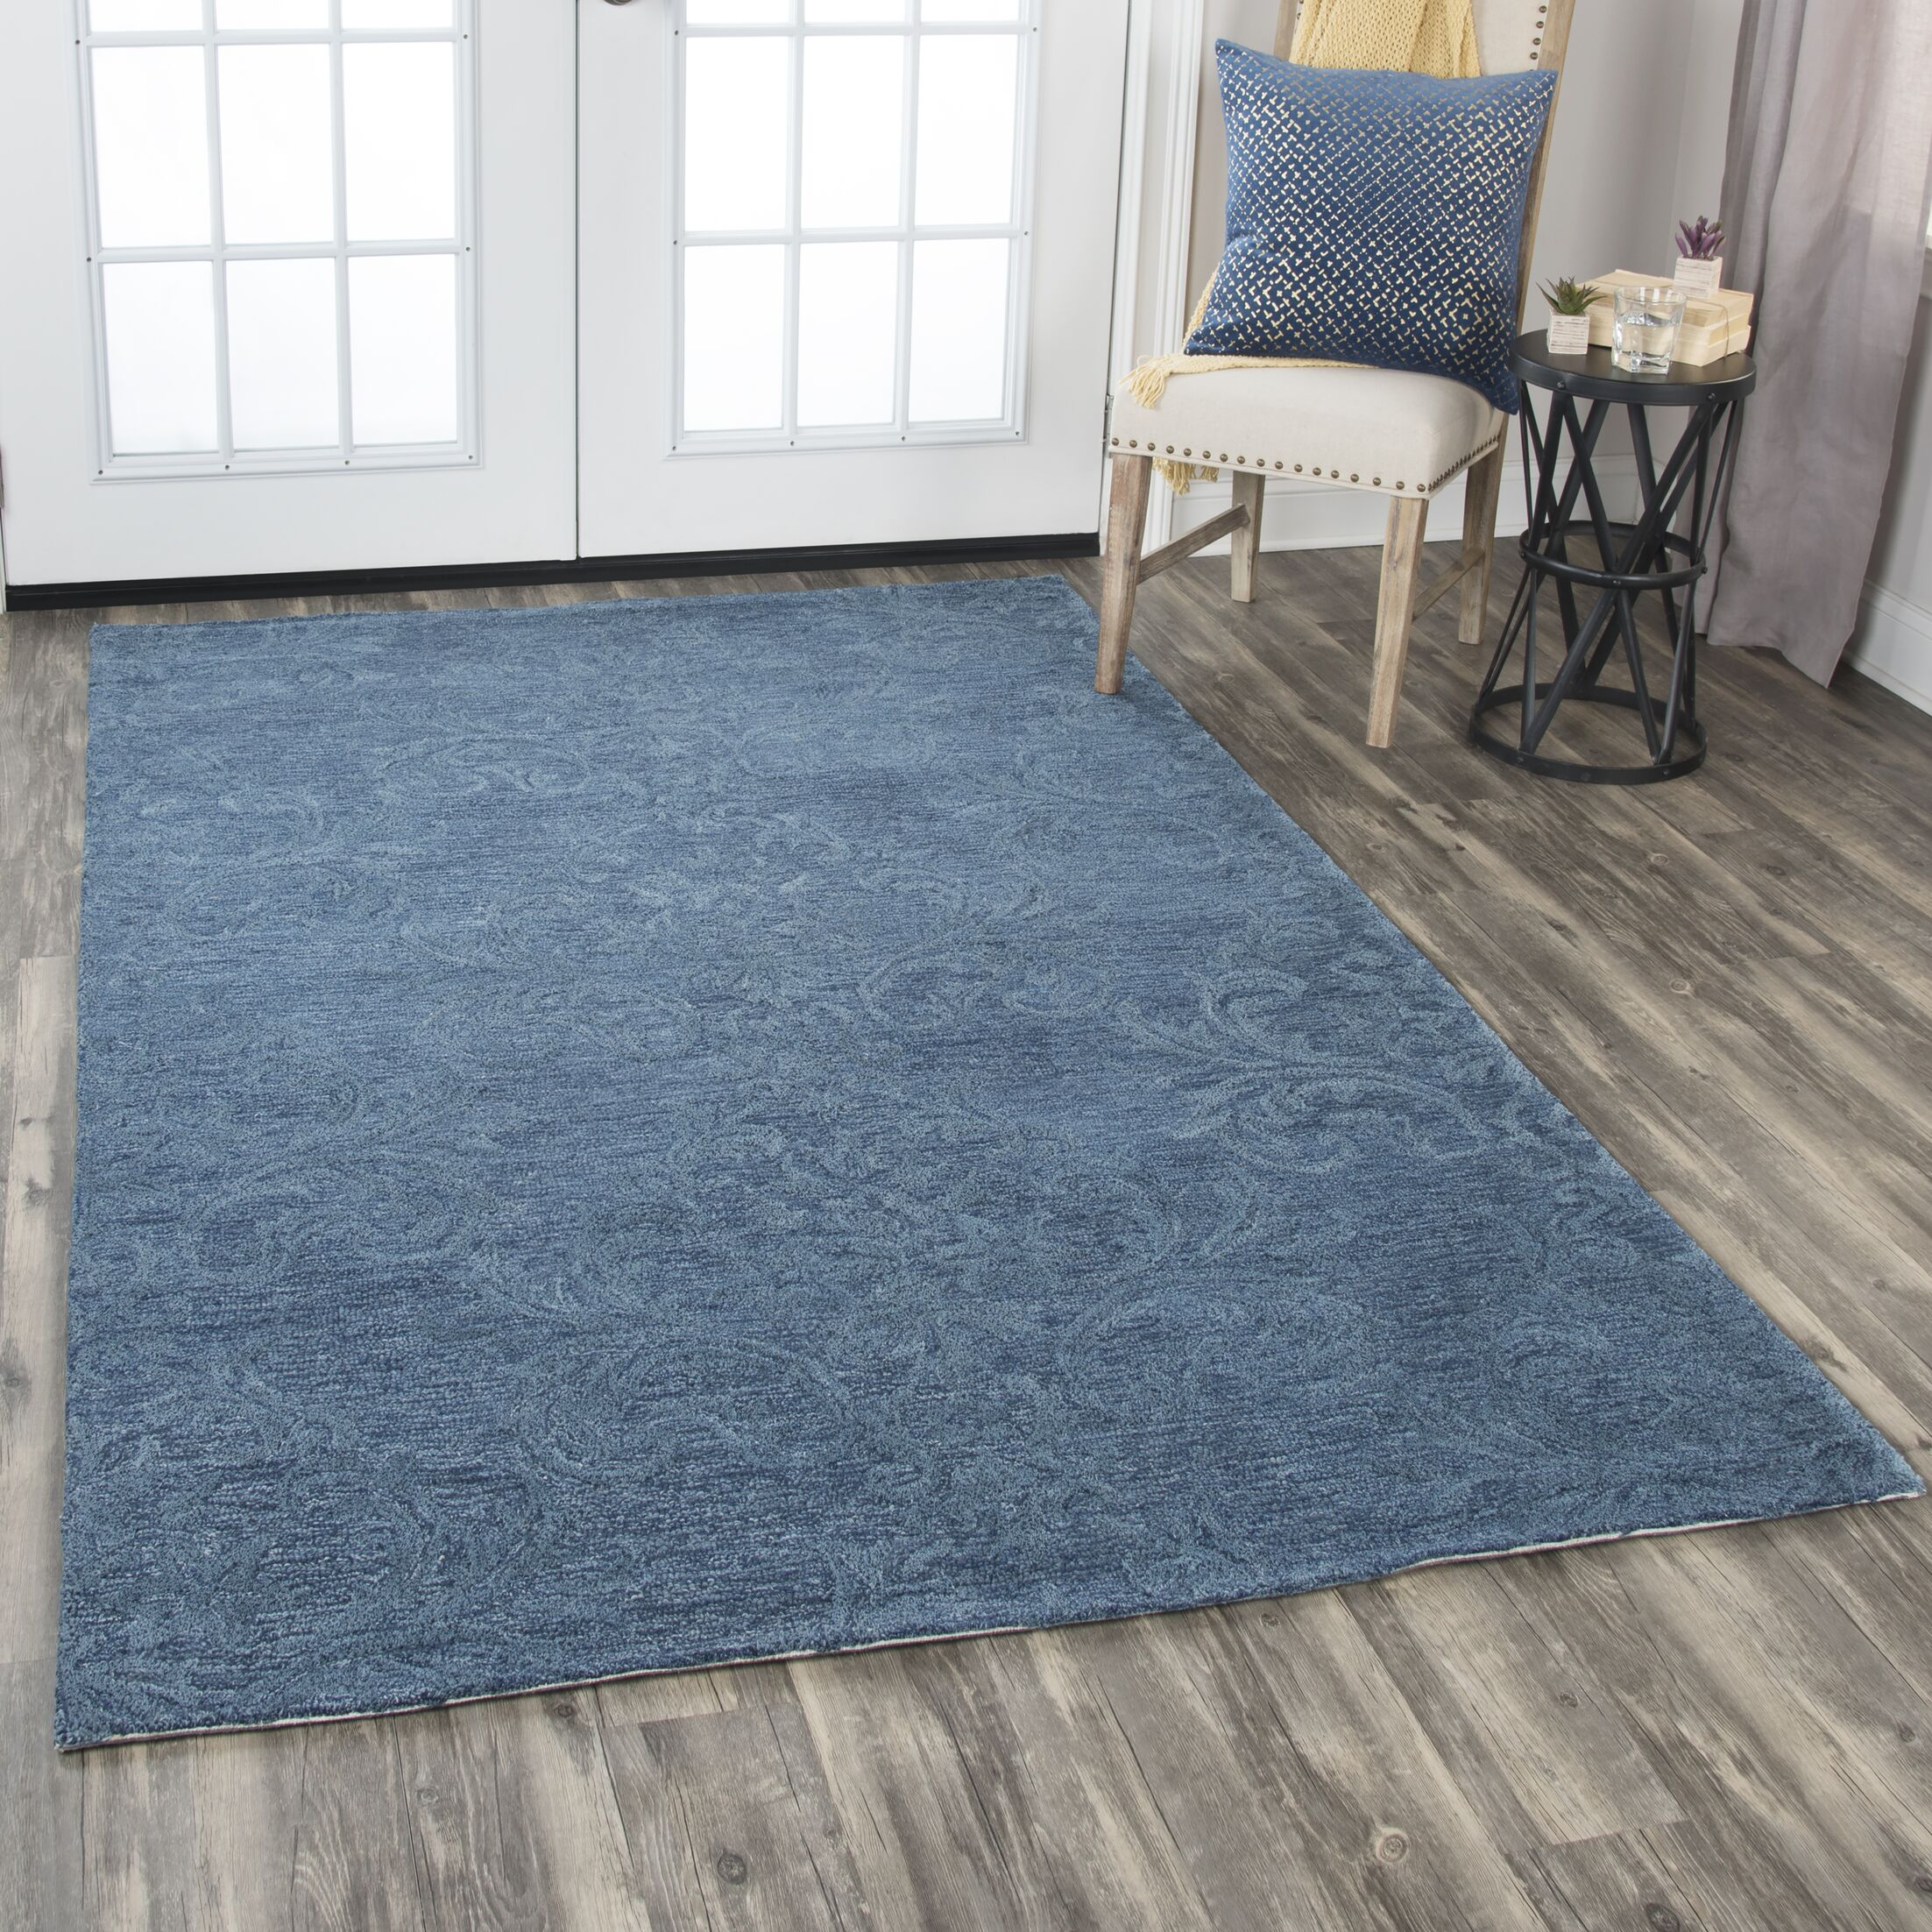 Etheredge Hand-Tufted Wool Blue Area Rug Rug Size: Rectangle 5' x 8'